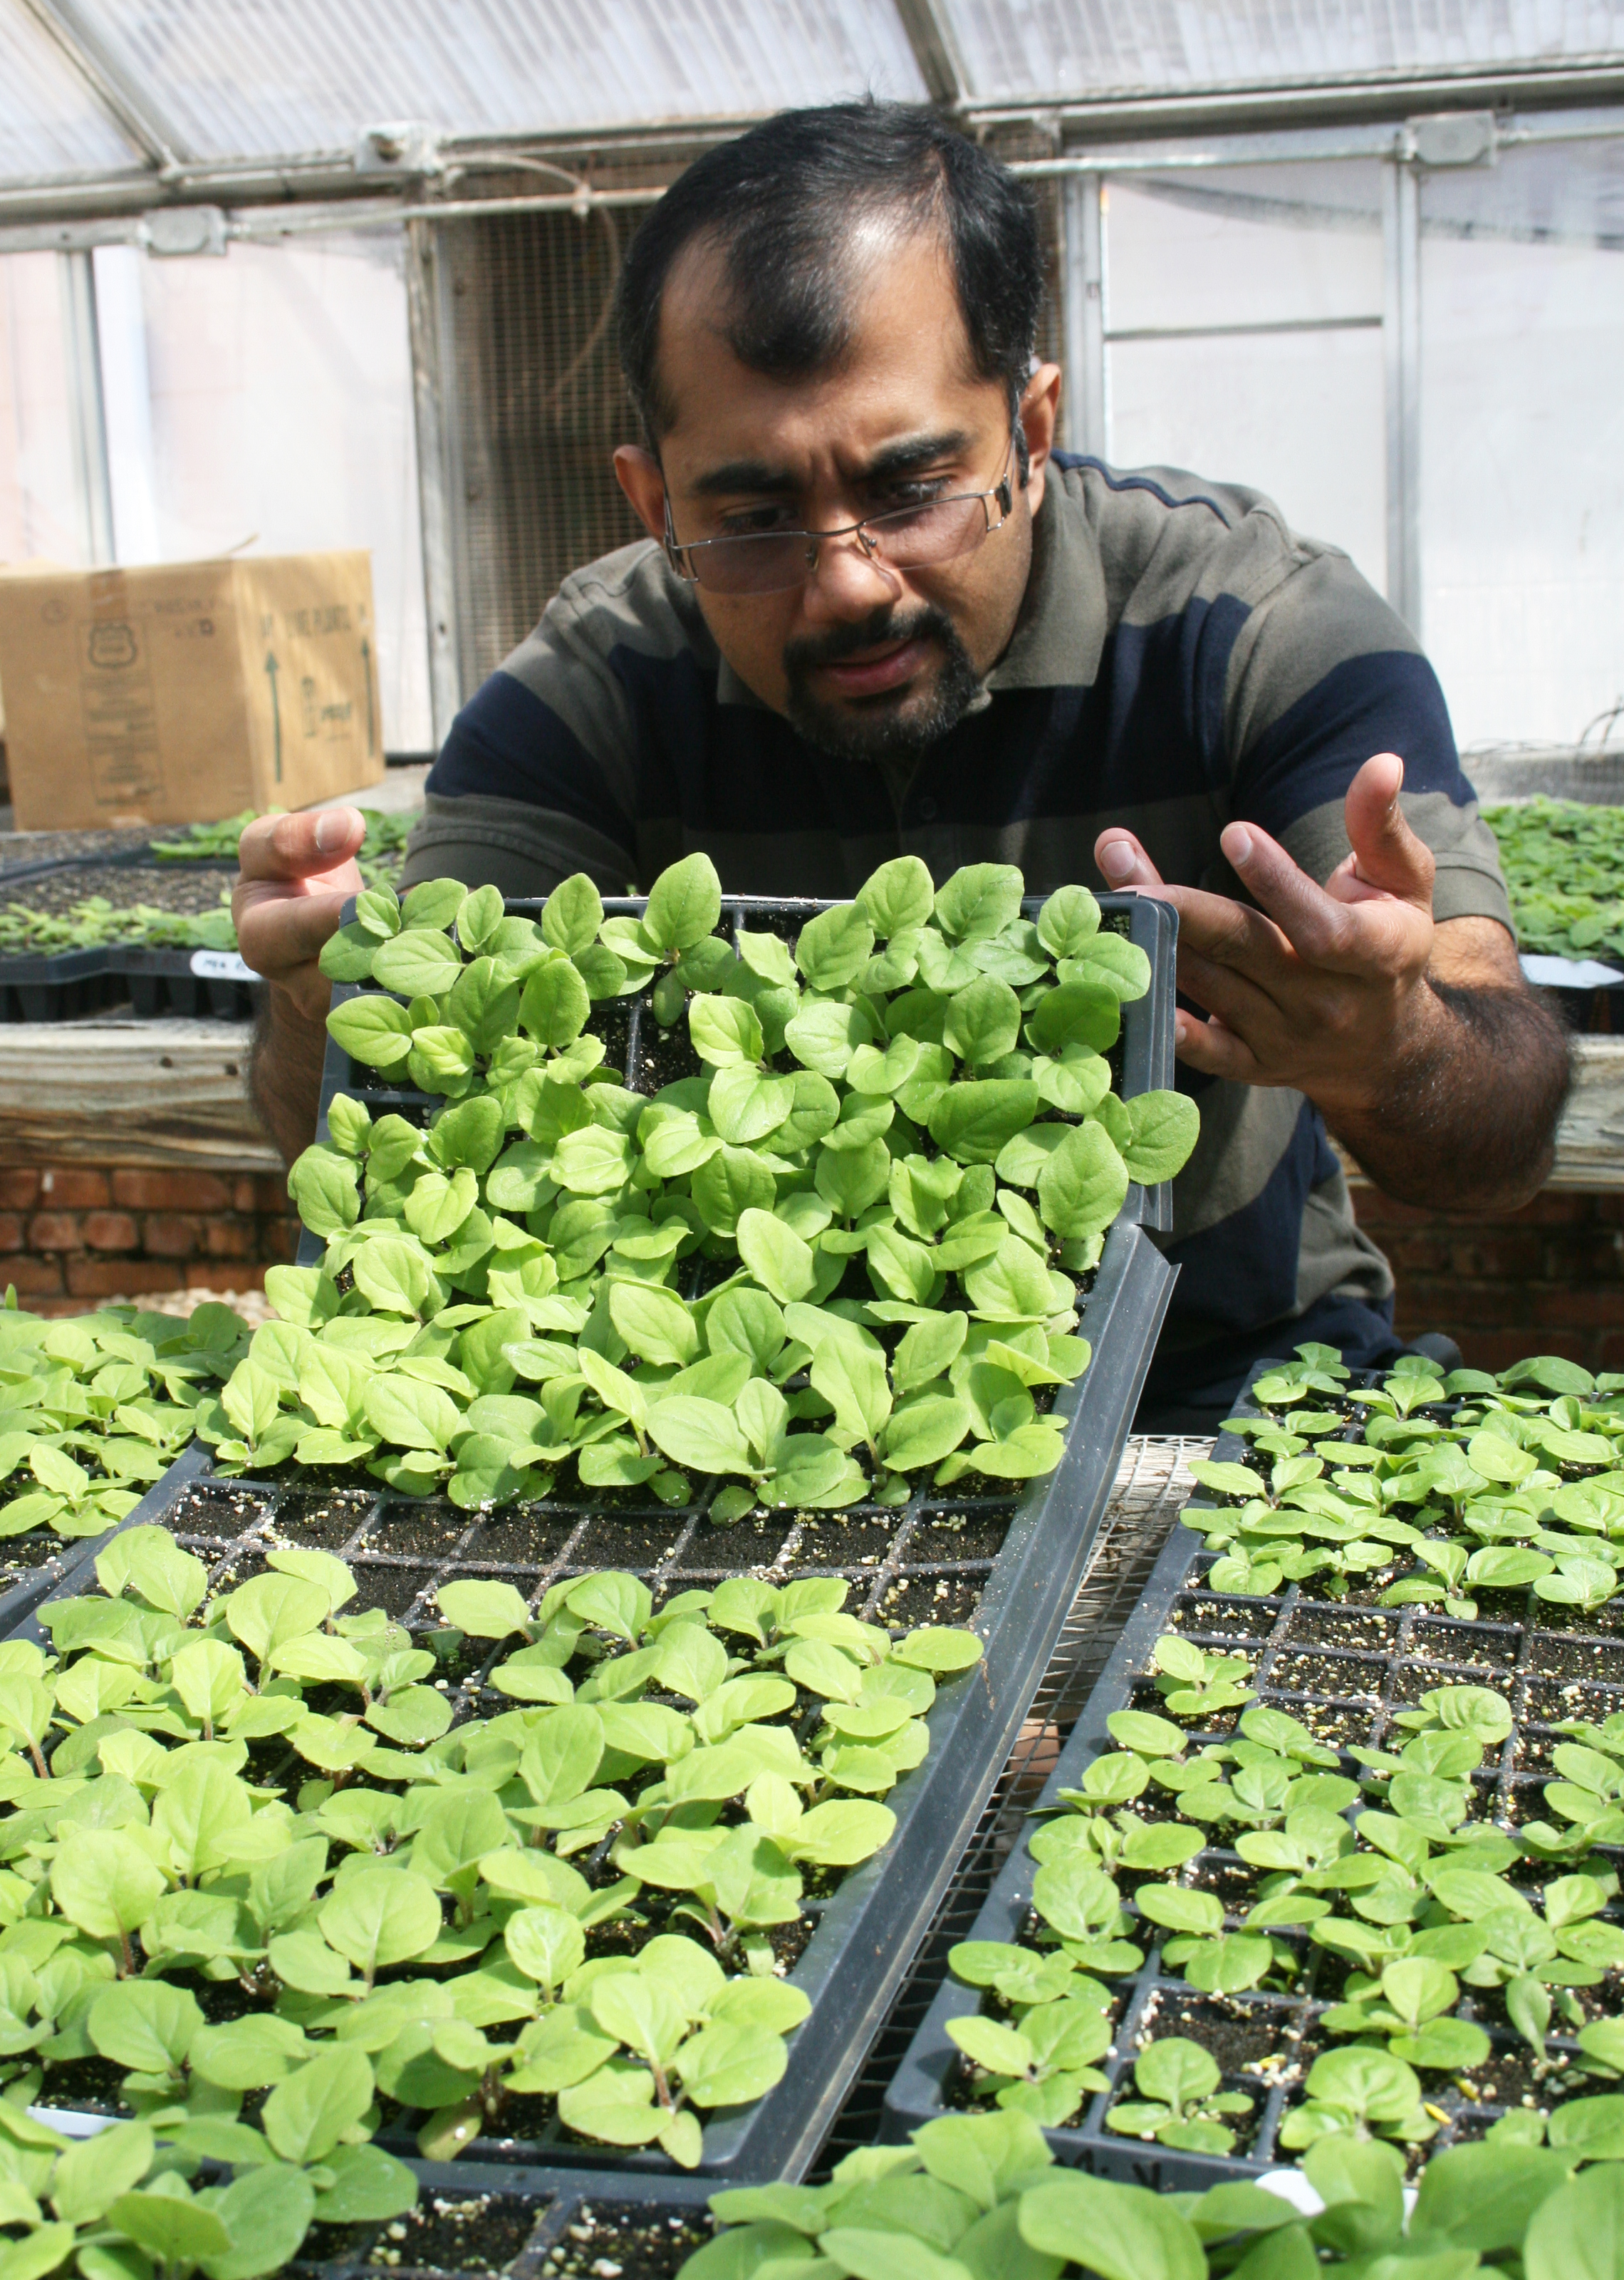 University of Georgia researcher Cheri Abraham inspects Gerbera daisy transplants for evidence of leaf miners.